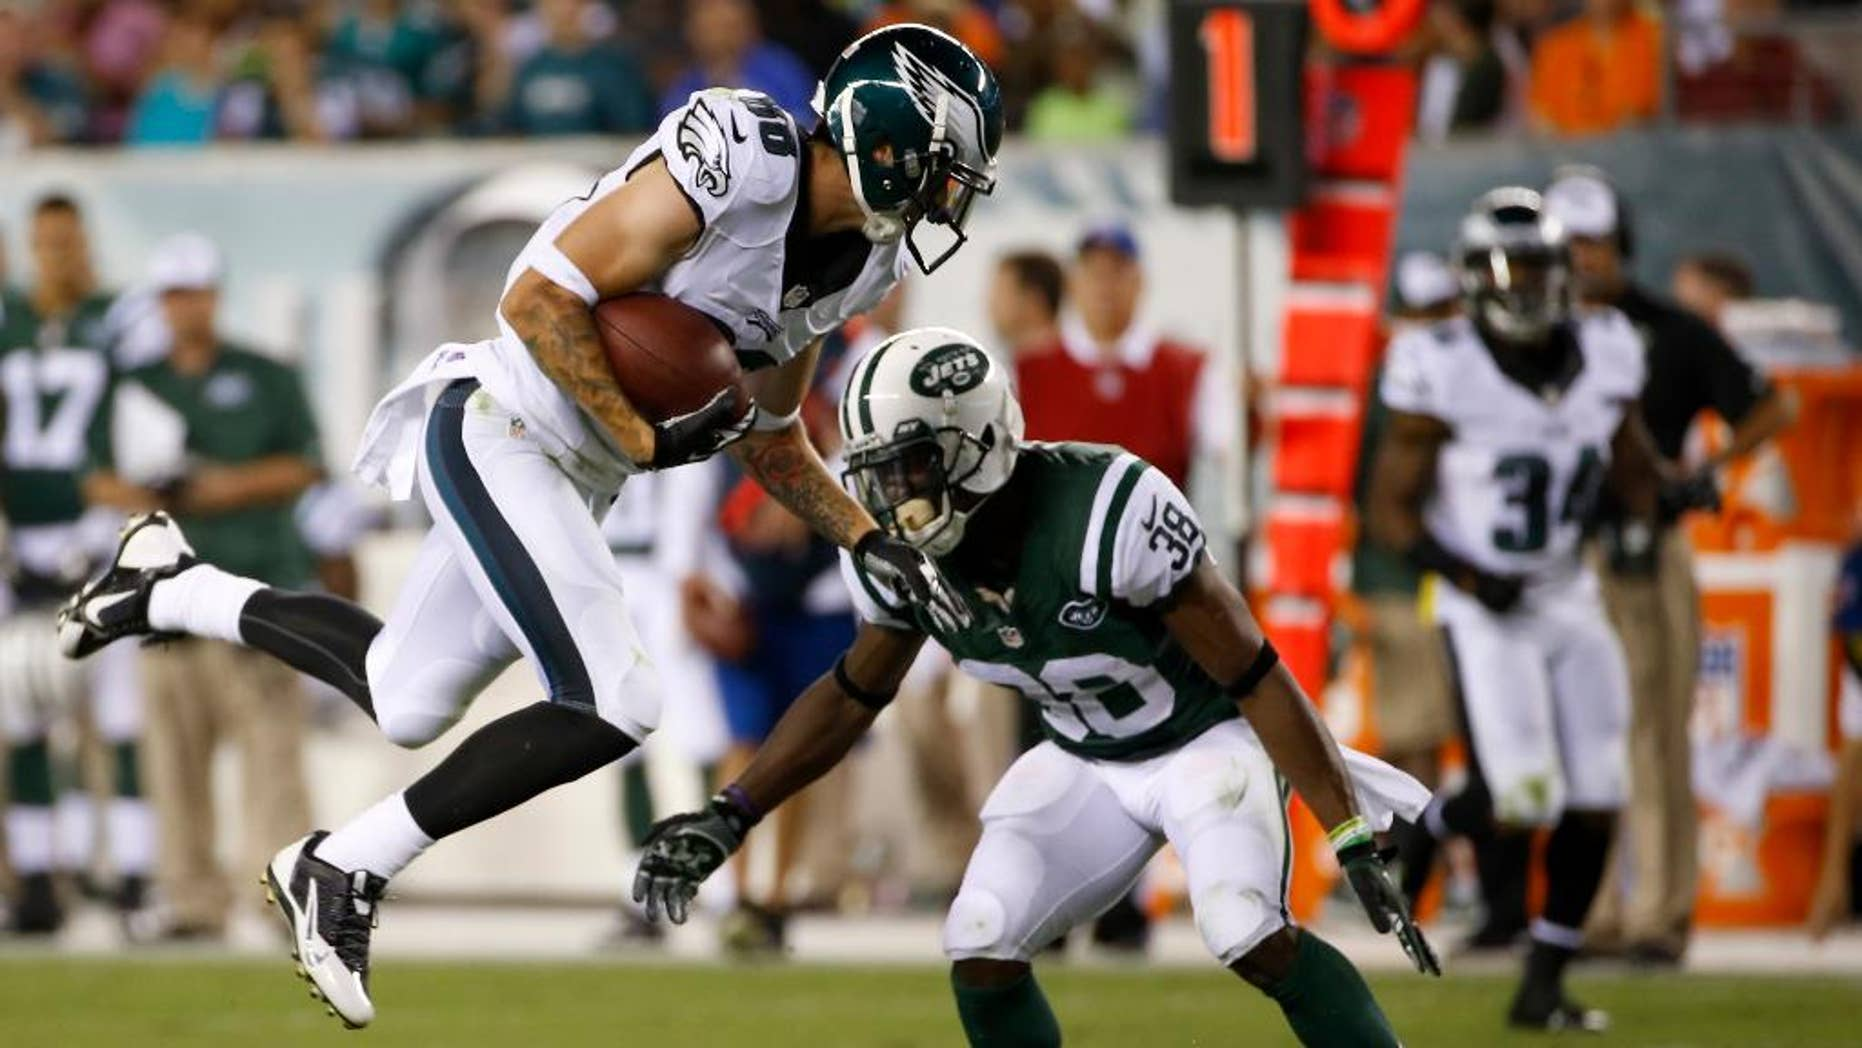 Philadelphia Eagles' Jeff Maehl, left, tries to leap past New York Jets' LeQuan Lewis after catching a pass during the first half of an NFL preseason football game, Thursday, Aug. 28, 2014, in Philadelphia. (AP Photo/Michael Perez)